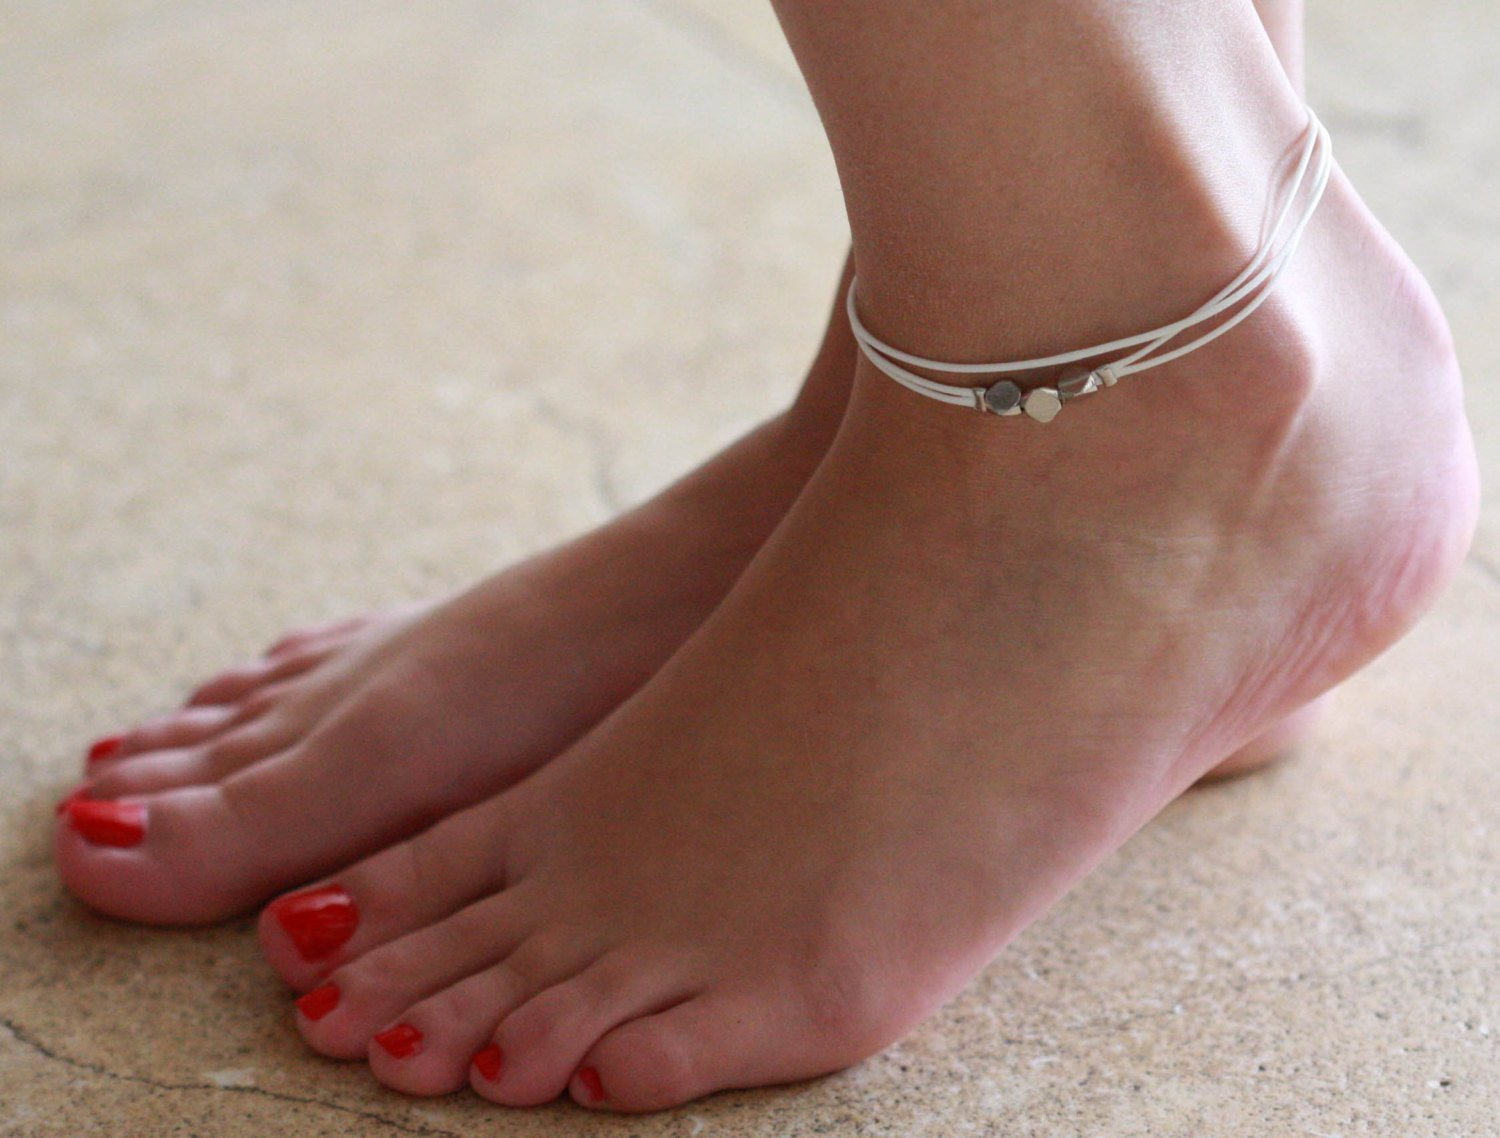 Handmade White Anklet For Women Set With 3 Silver Plated Beads By Galis Jewelry - White Ankle Bracelet For Women - Beaded Anklet